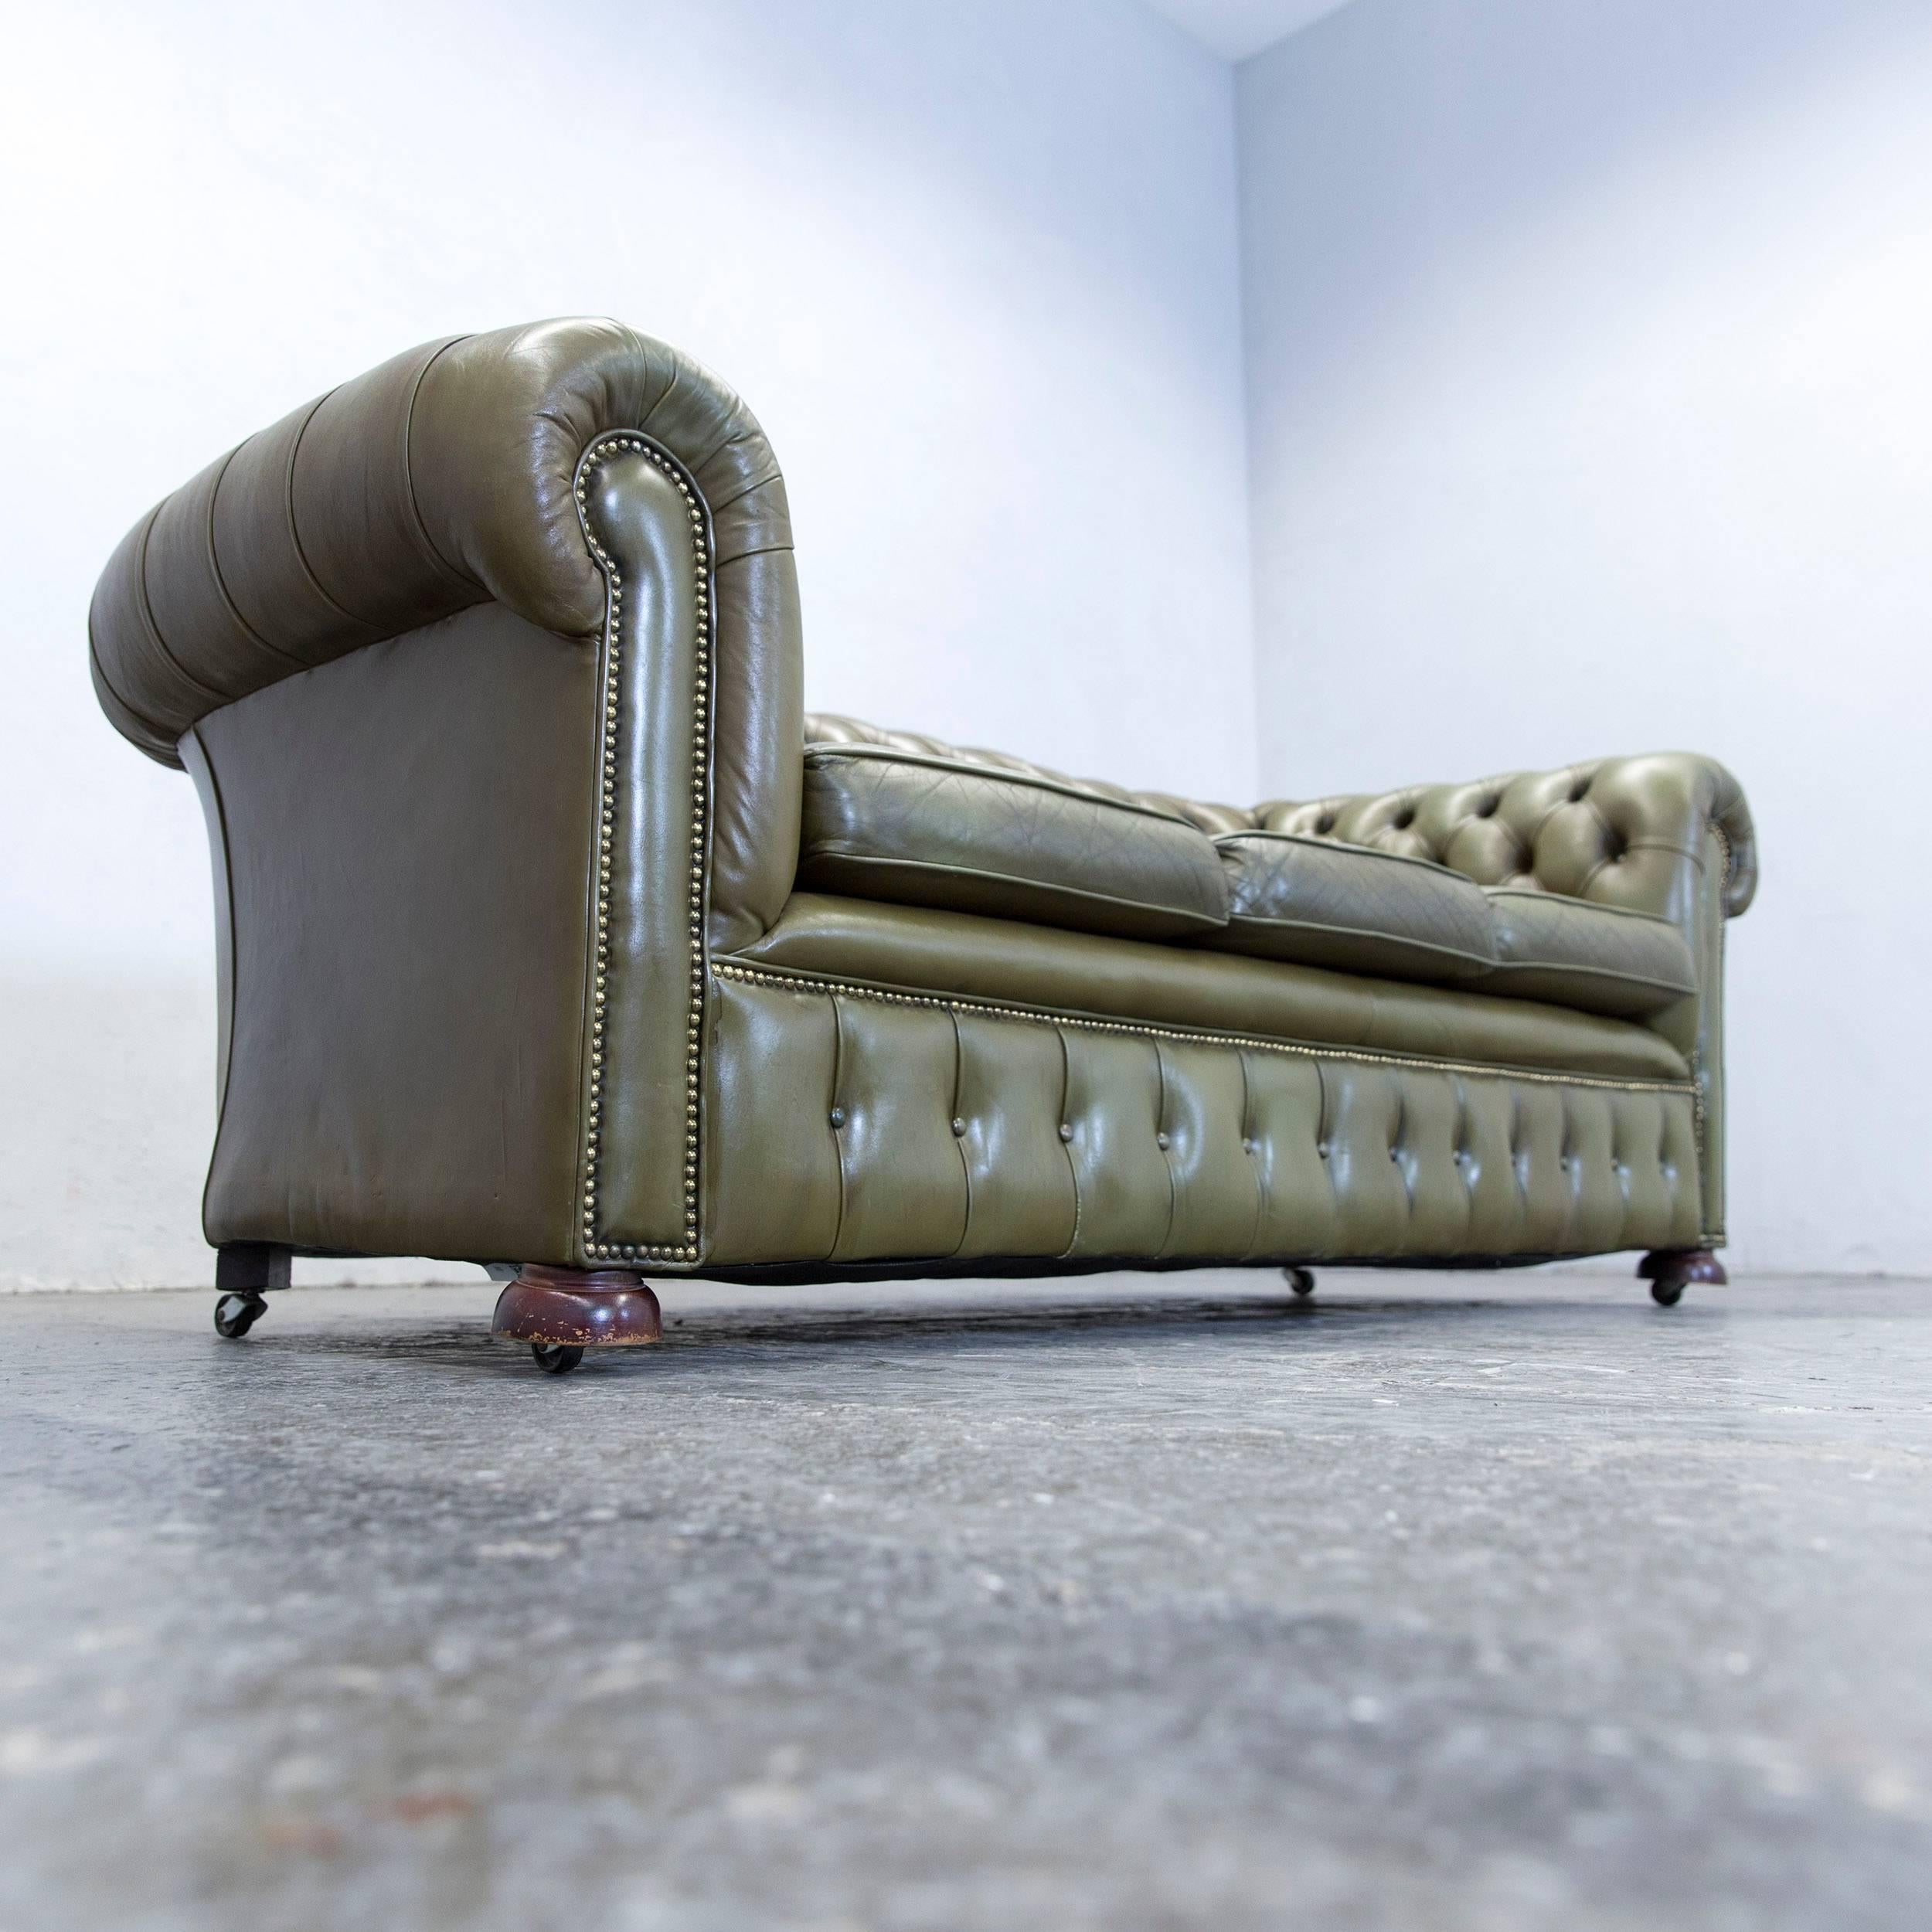 Merveilleux Chesterfield Leather Sofa Green Three Seat Couch Vintage Retro At 1stdibs